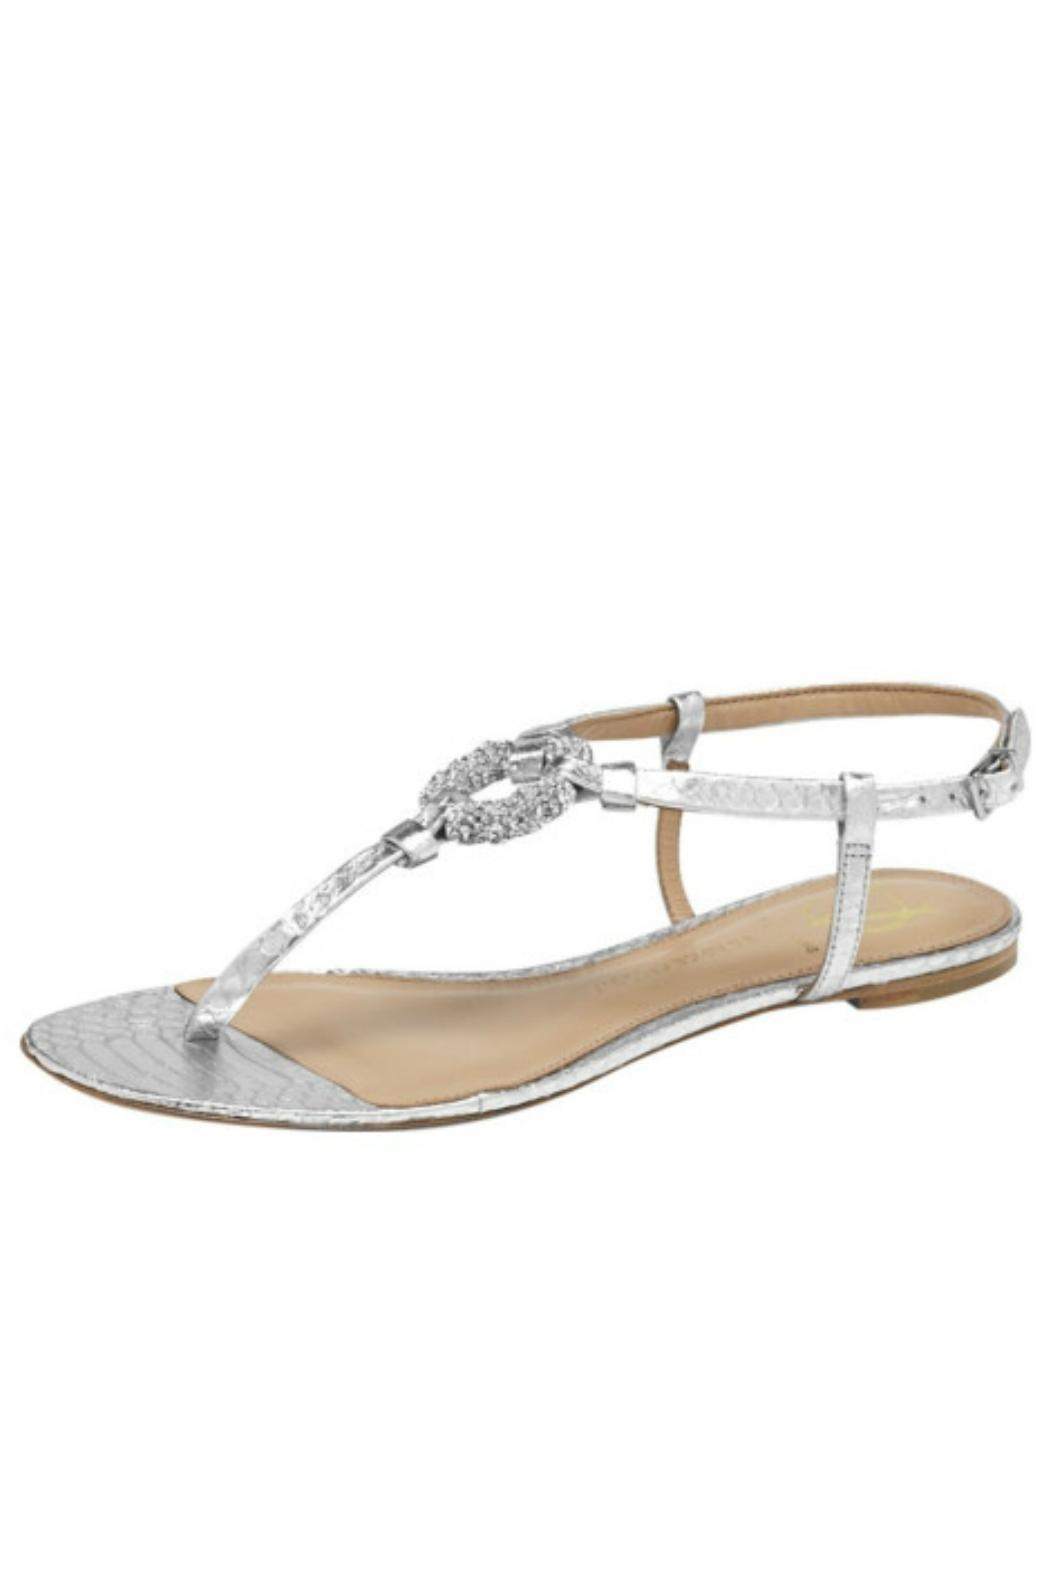 dbbdec79d6ec32 Vince Camuto Signature Vc Bolda Sandal from New Hampshire by ...